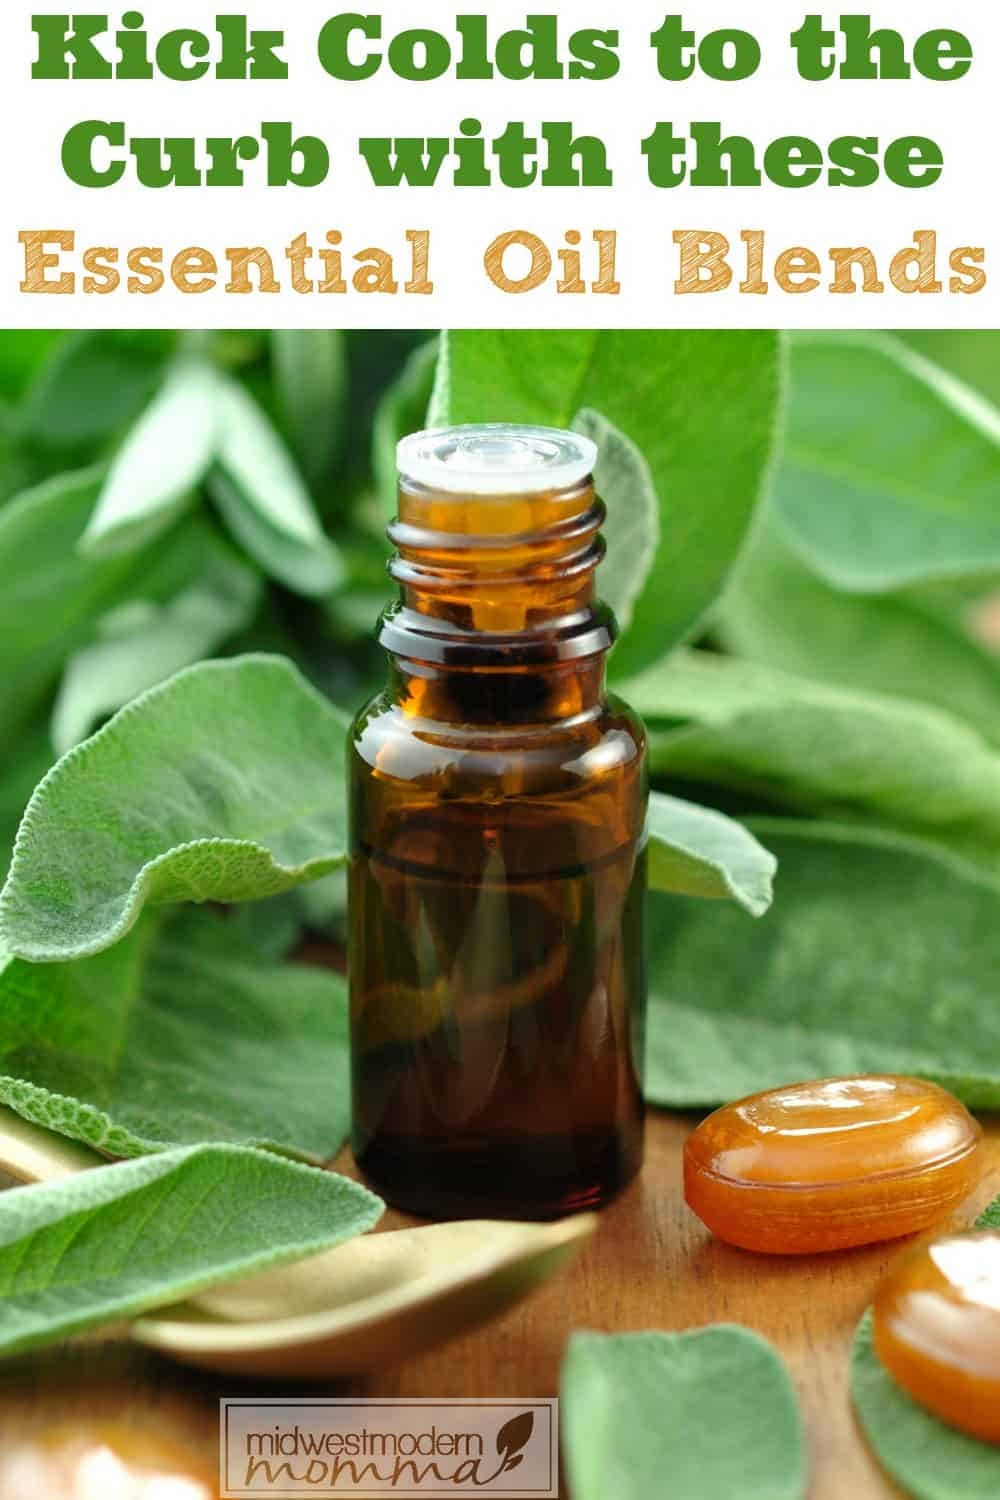 Kick Colds to the Curb with these Essential Oil Blends